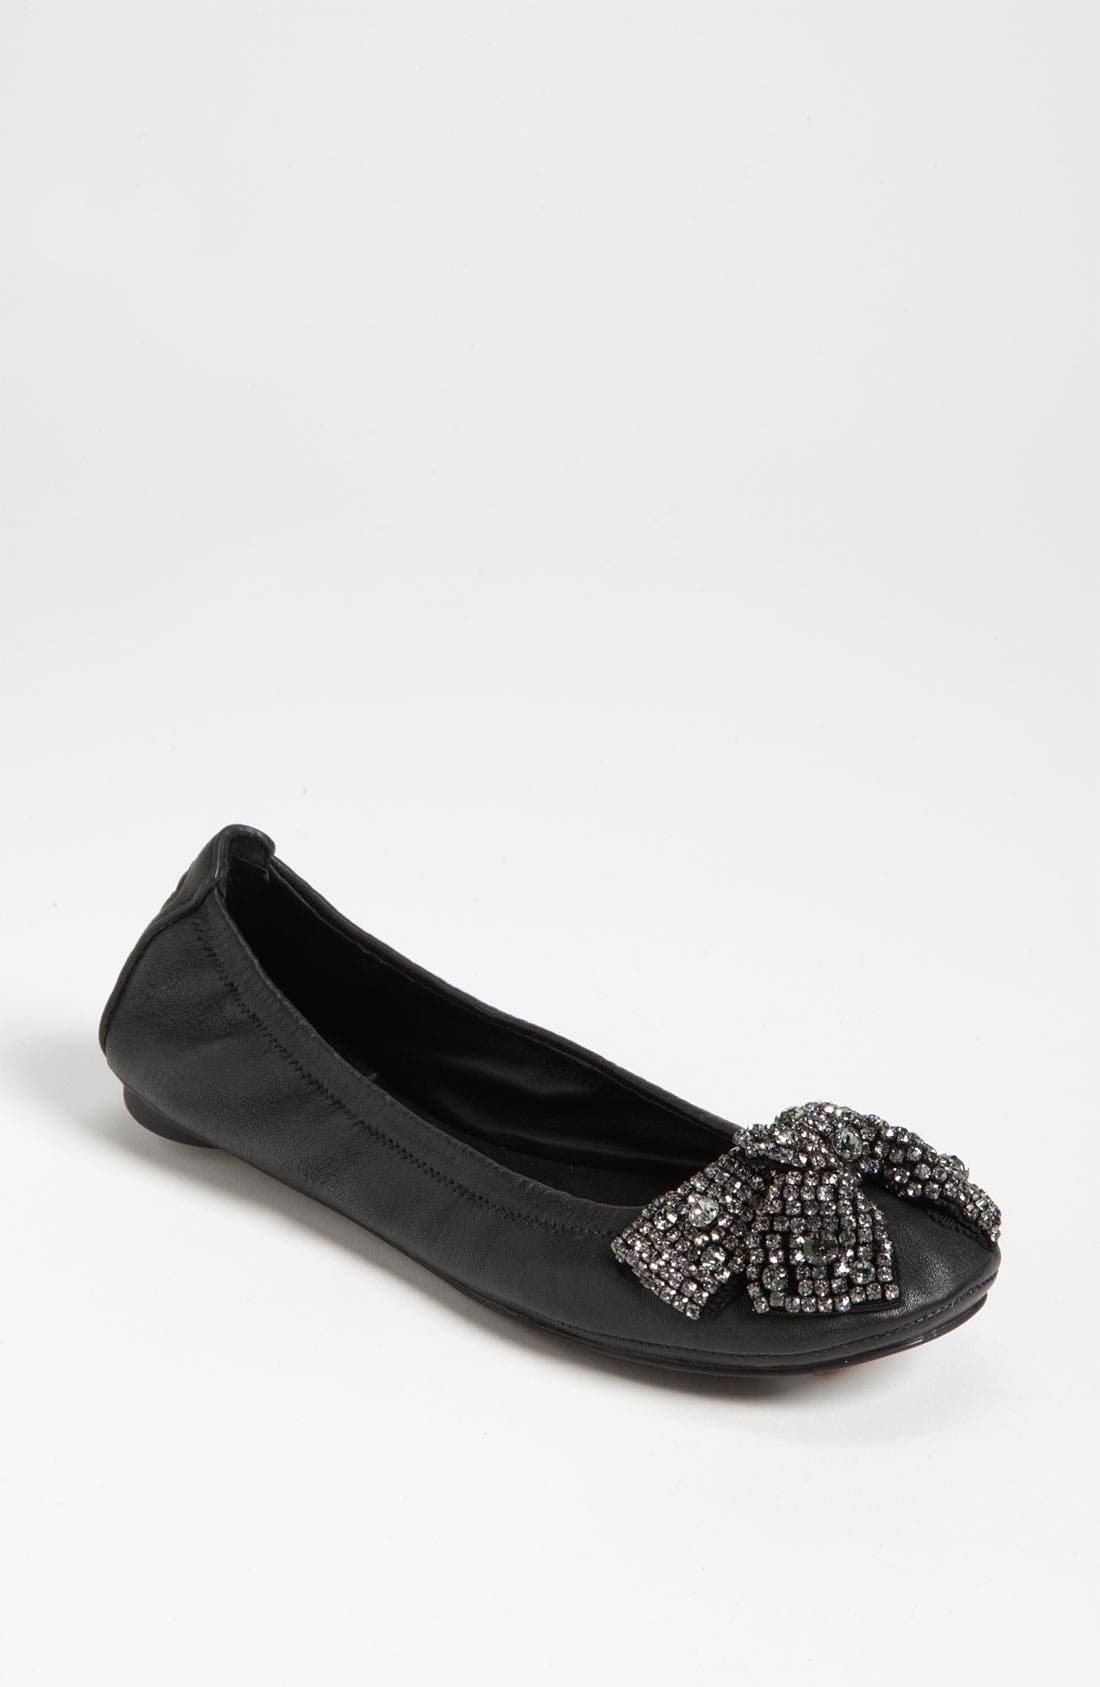 Alternate Image 1 Selected - Tory Burch 'Eddie' Bow Flat